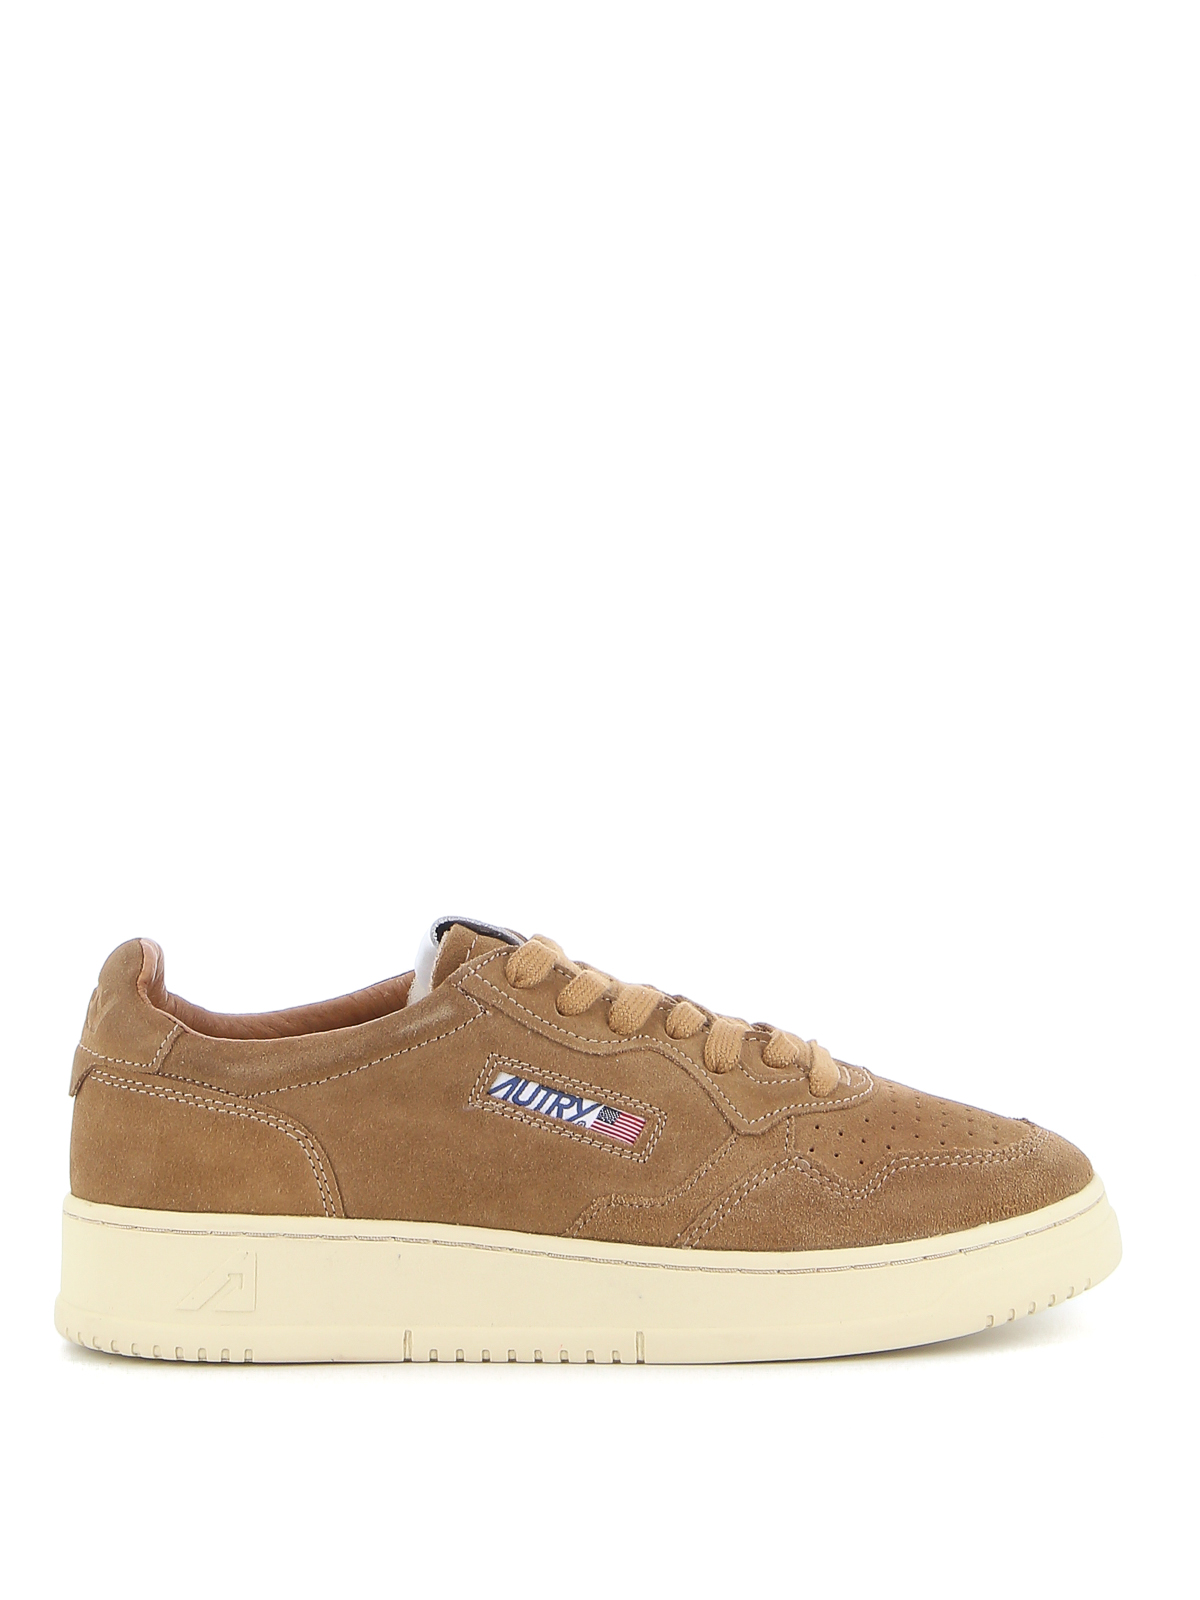 Picture of Autry | Autry 01 Low Suede